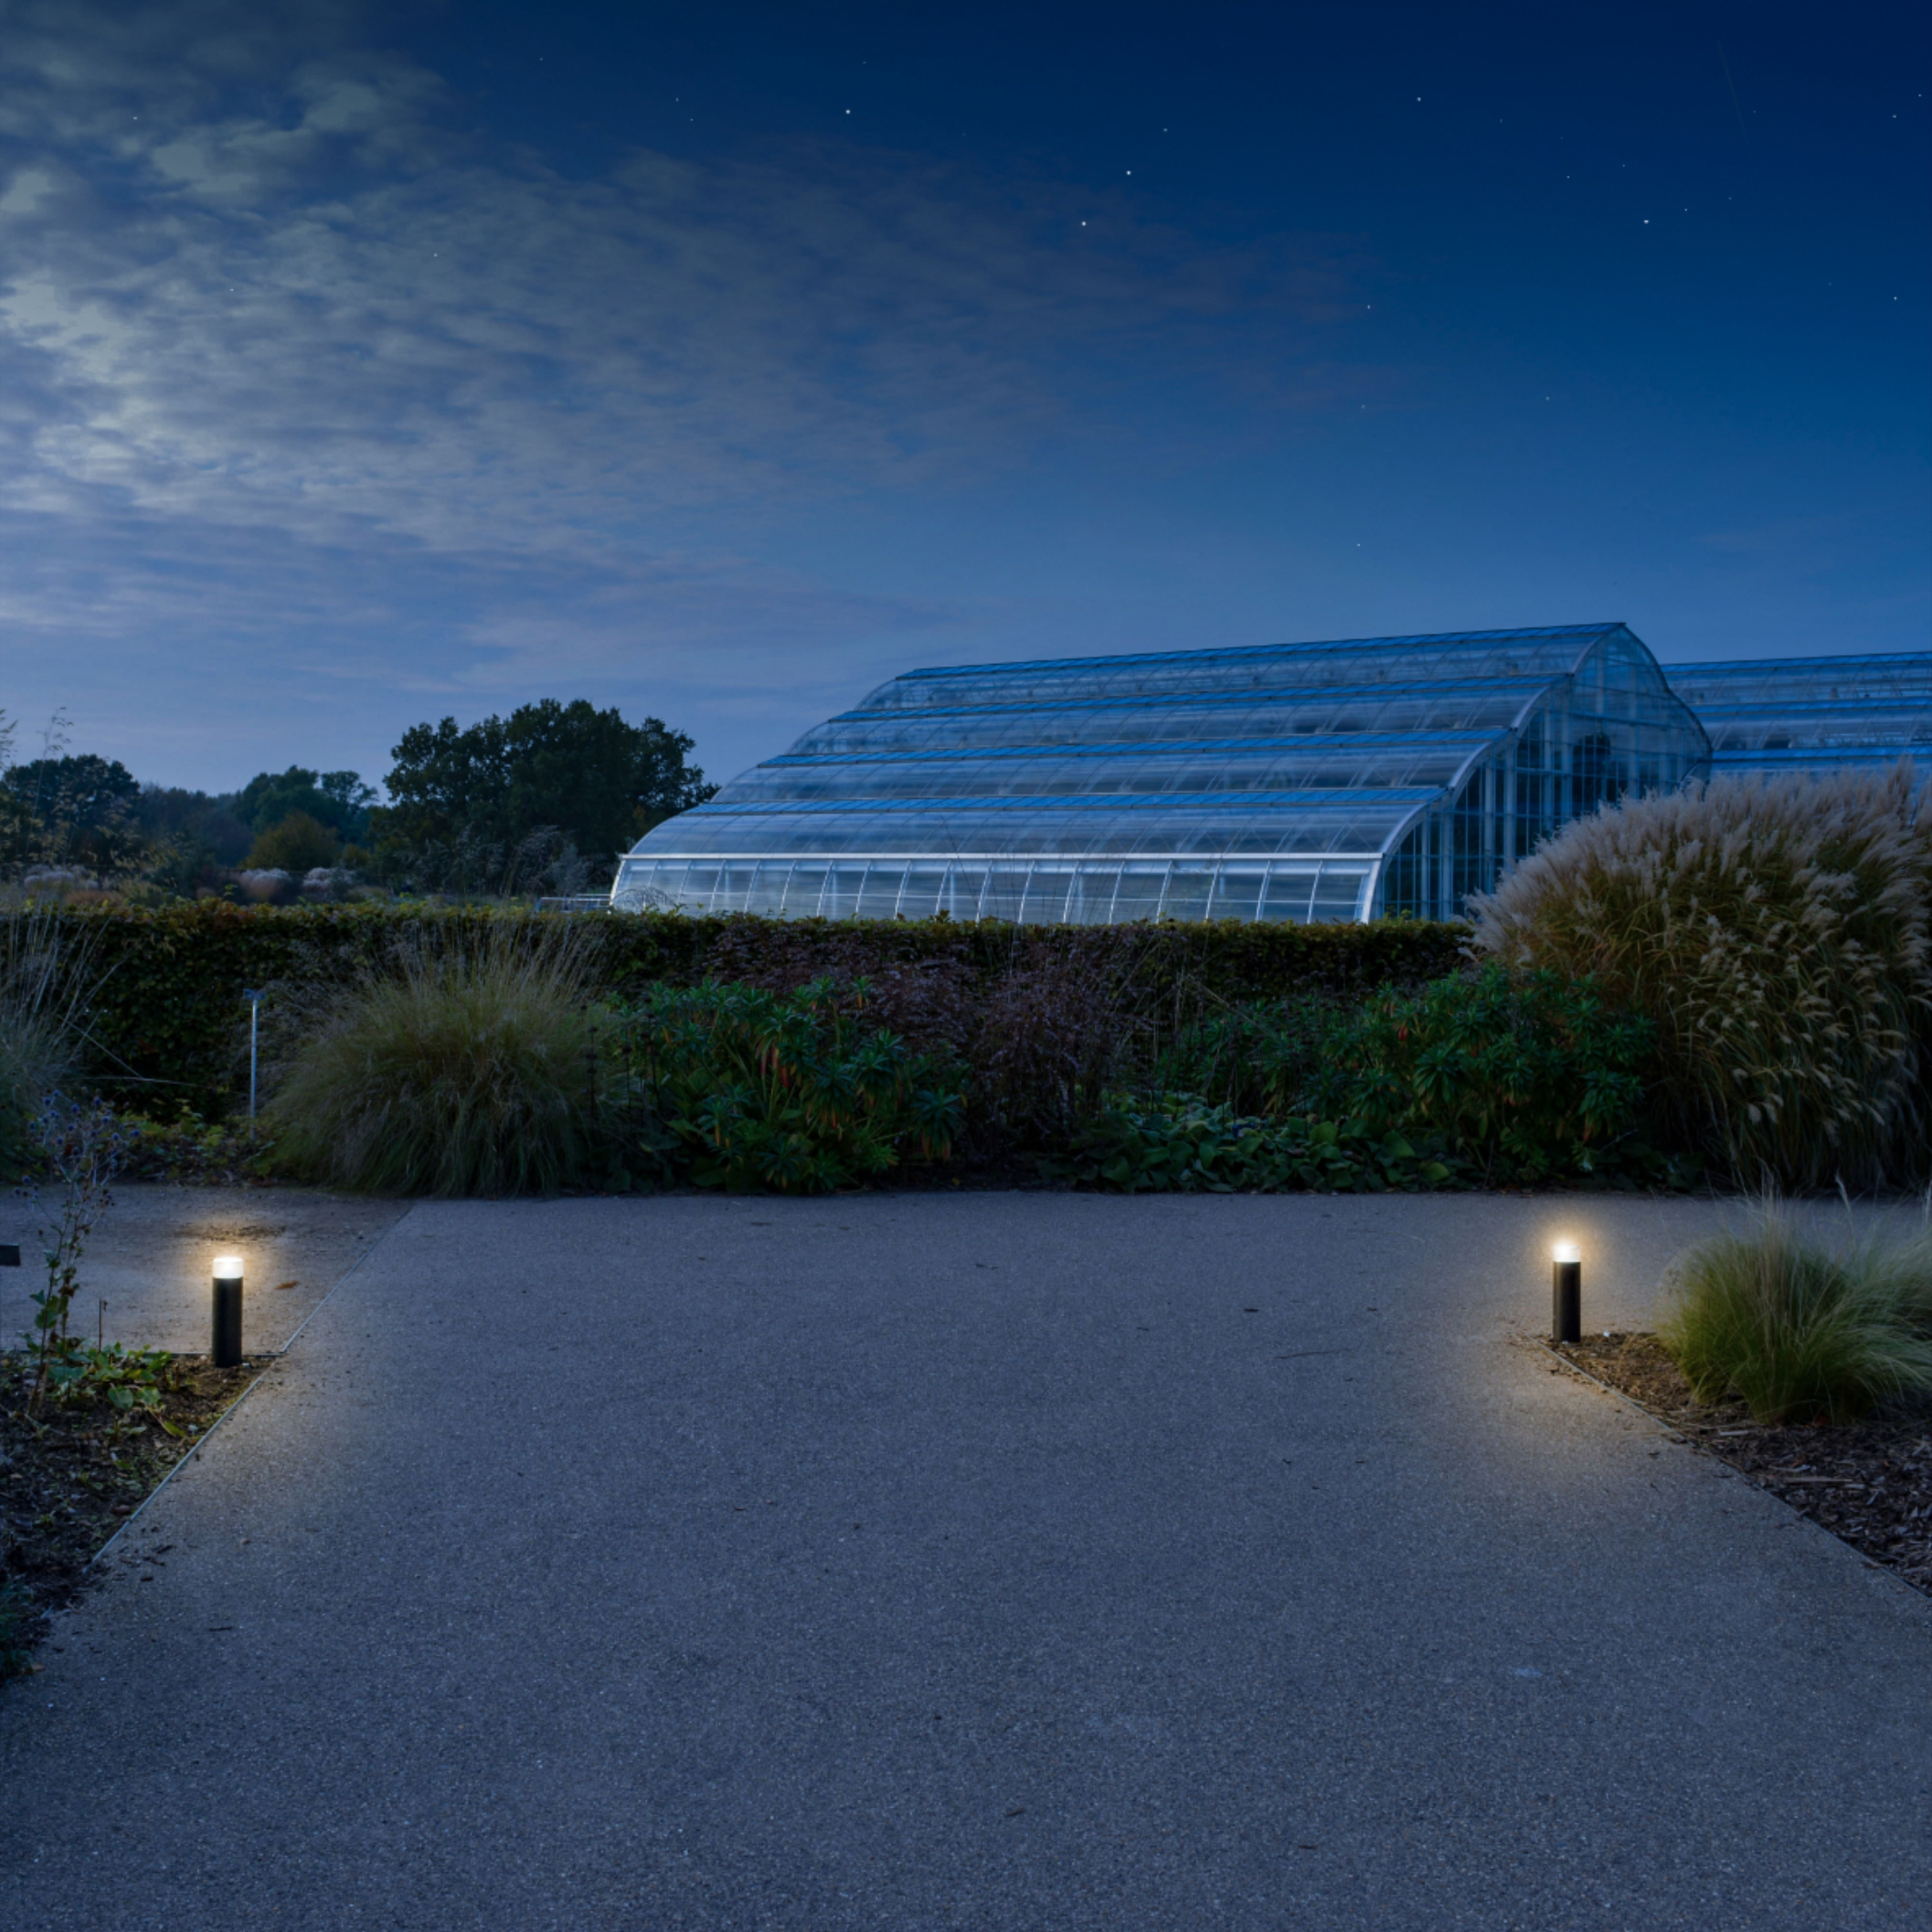 The Royal Horticultural Society's Garden, Wisley In Surrey